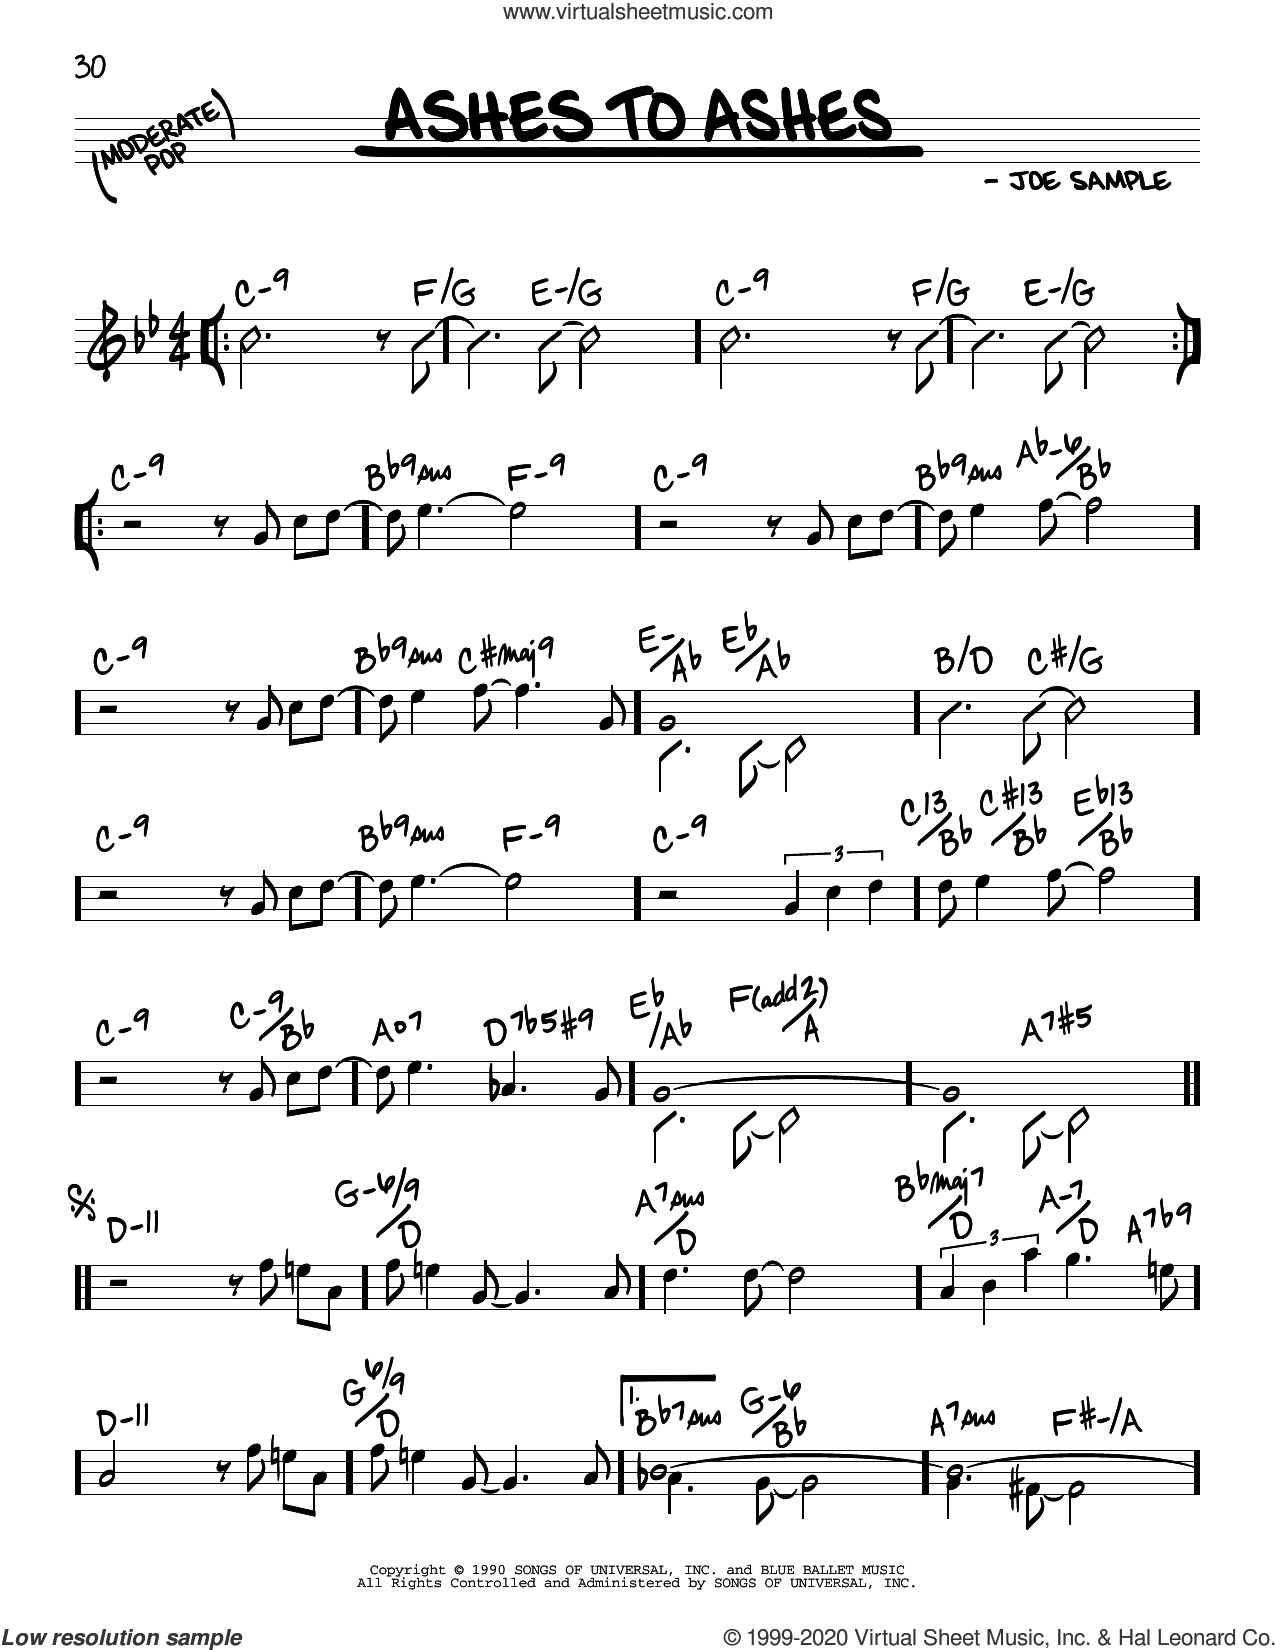 Ashes To Ashes sheet music for voice and other instruments (real book) by Joe Sample, intermediate skill level